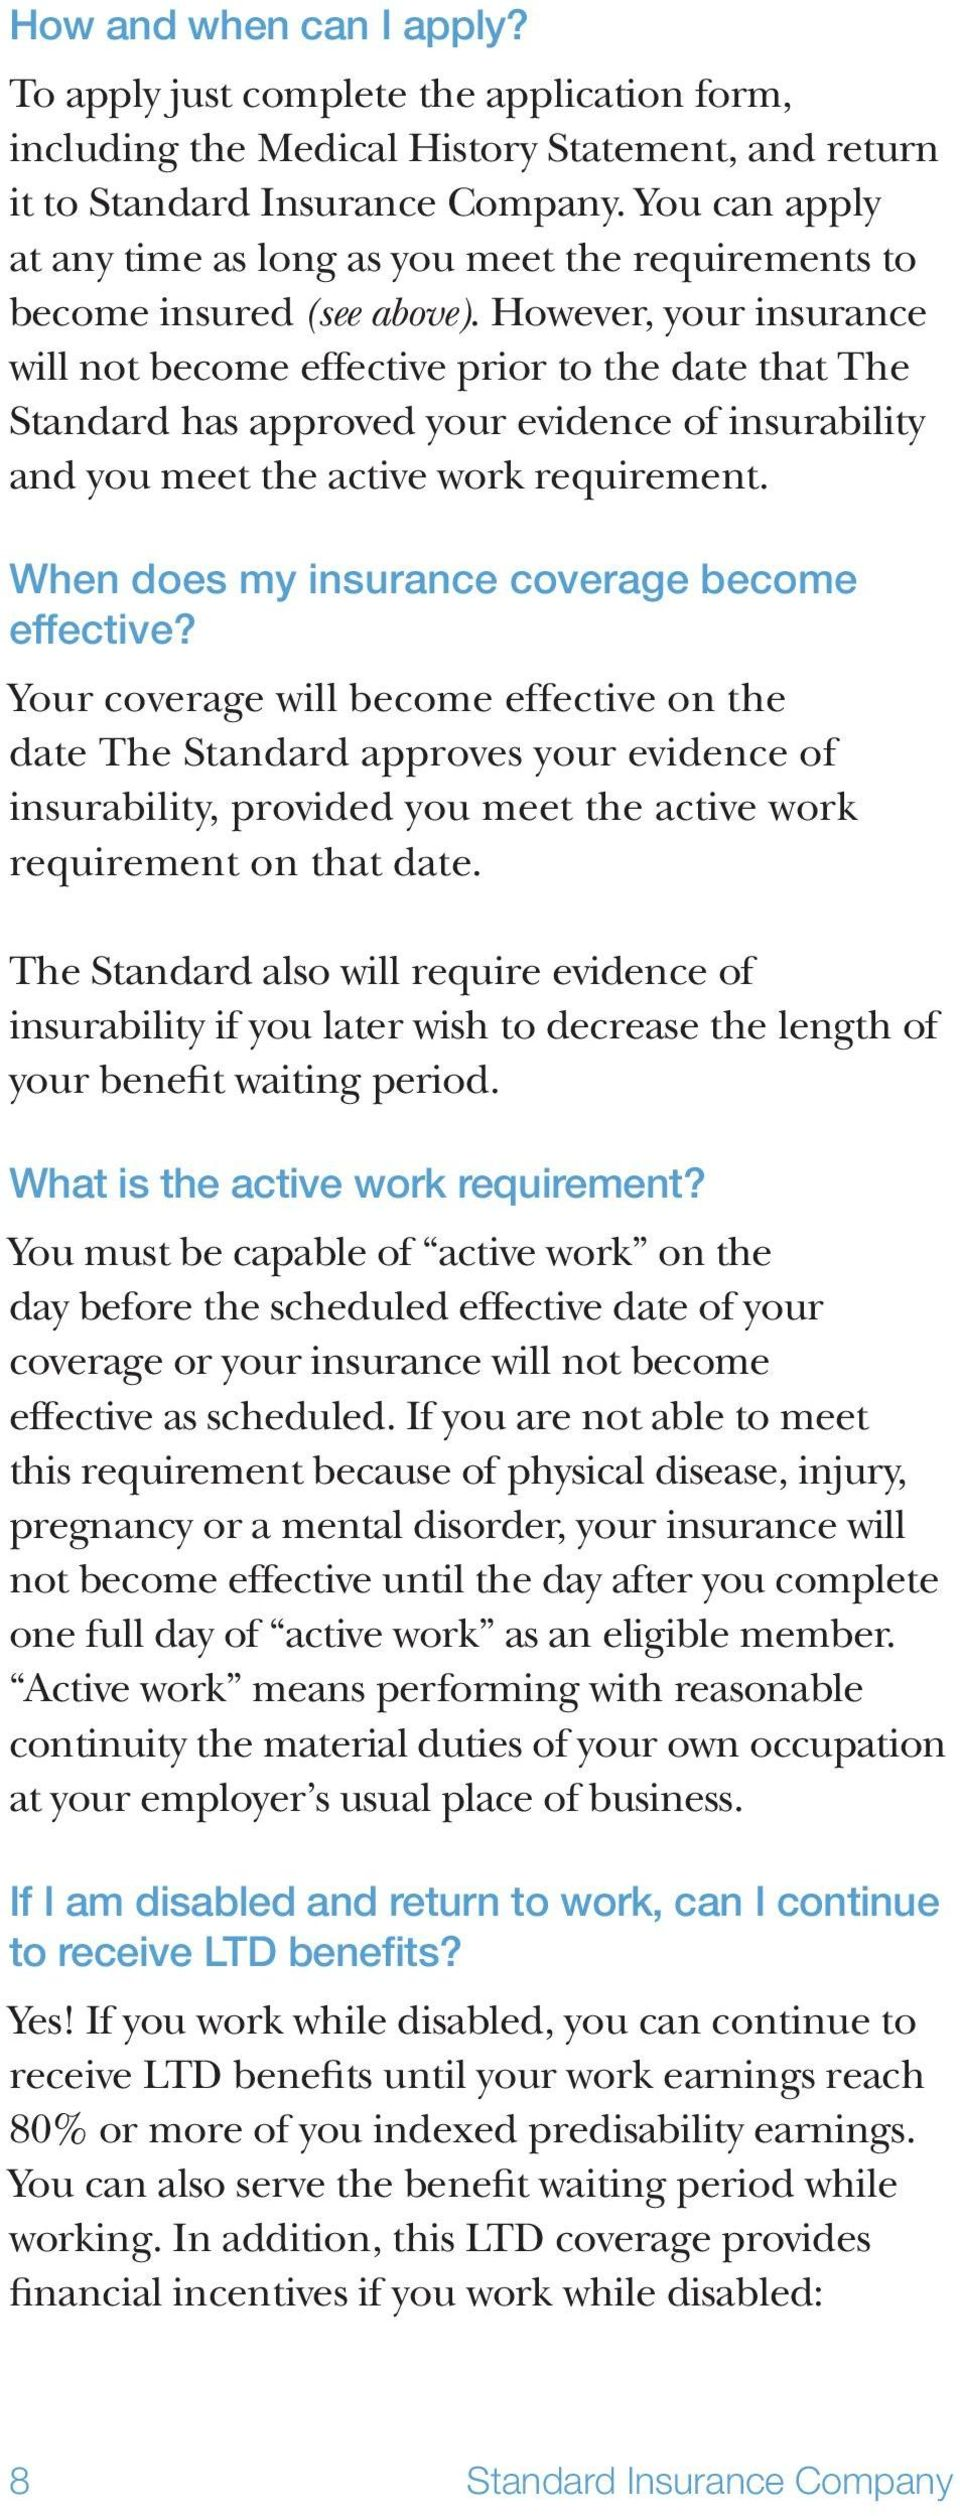 However, your insurance will not become effective prior to the date that The Standard has approved your evidence of insurability and you meet the active work requirement.